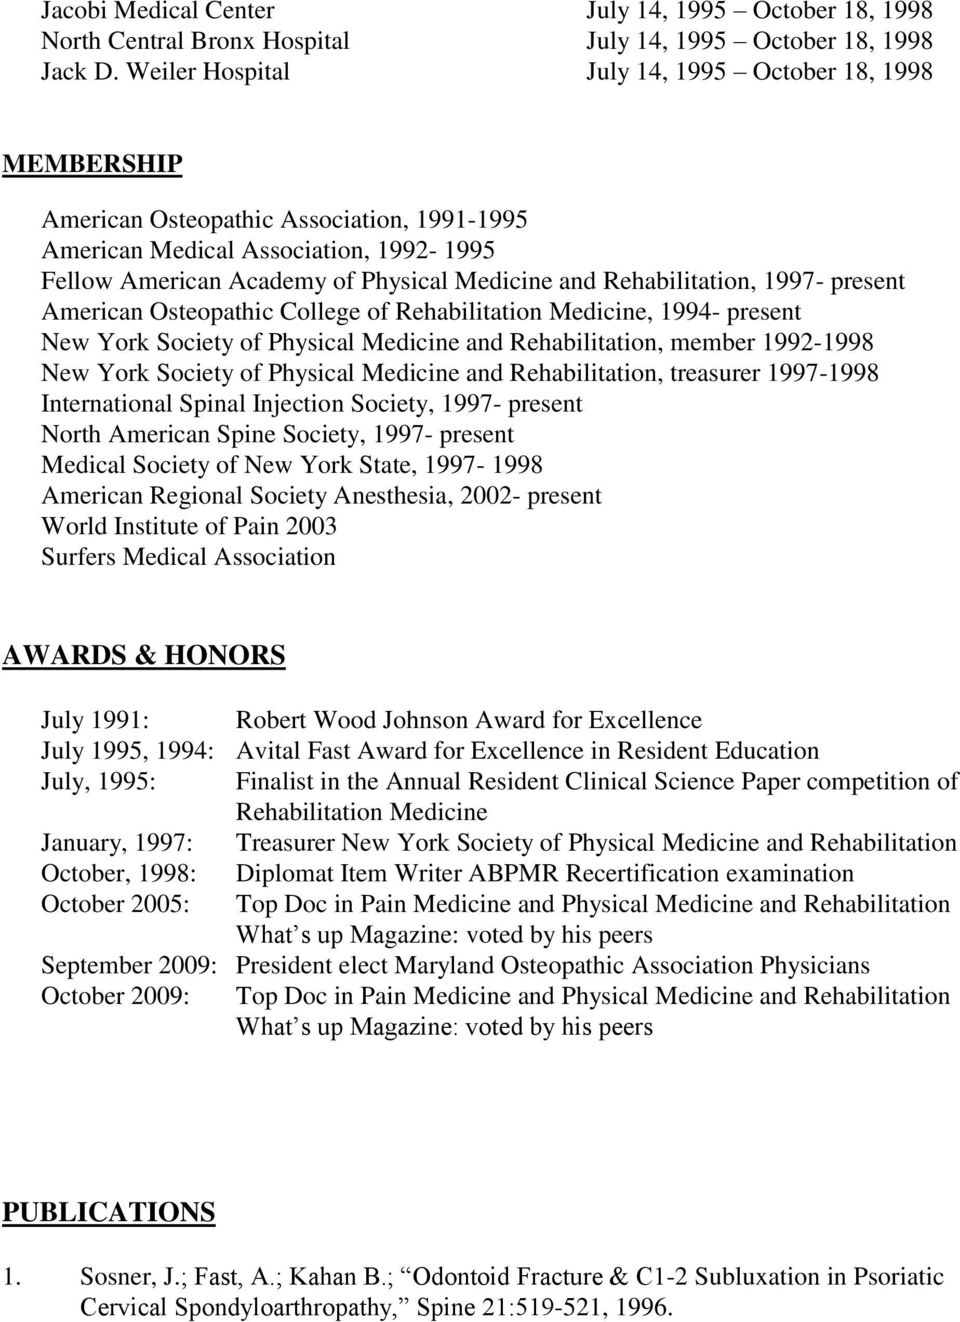 Rehabilitation, 1997- present American Osteopathic College of Rehabilitation Medicine, 1994- present New York Society of Physical Medicine and Rehabilitation, member 1992-1998 New York Society of